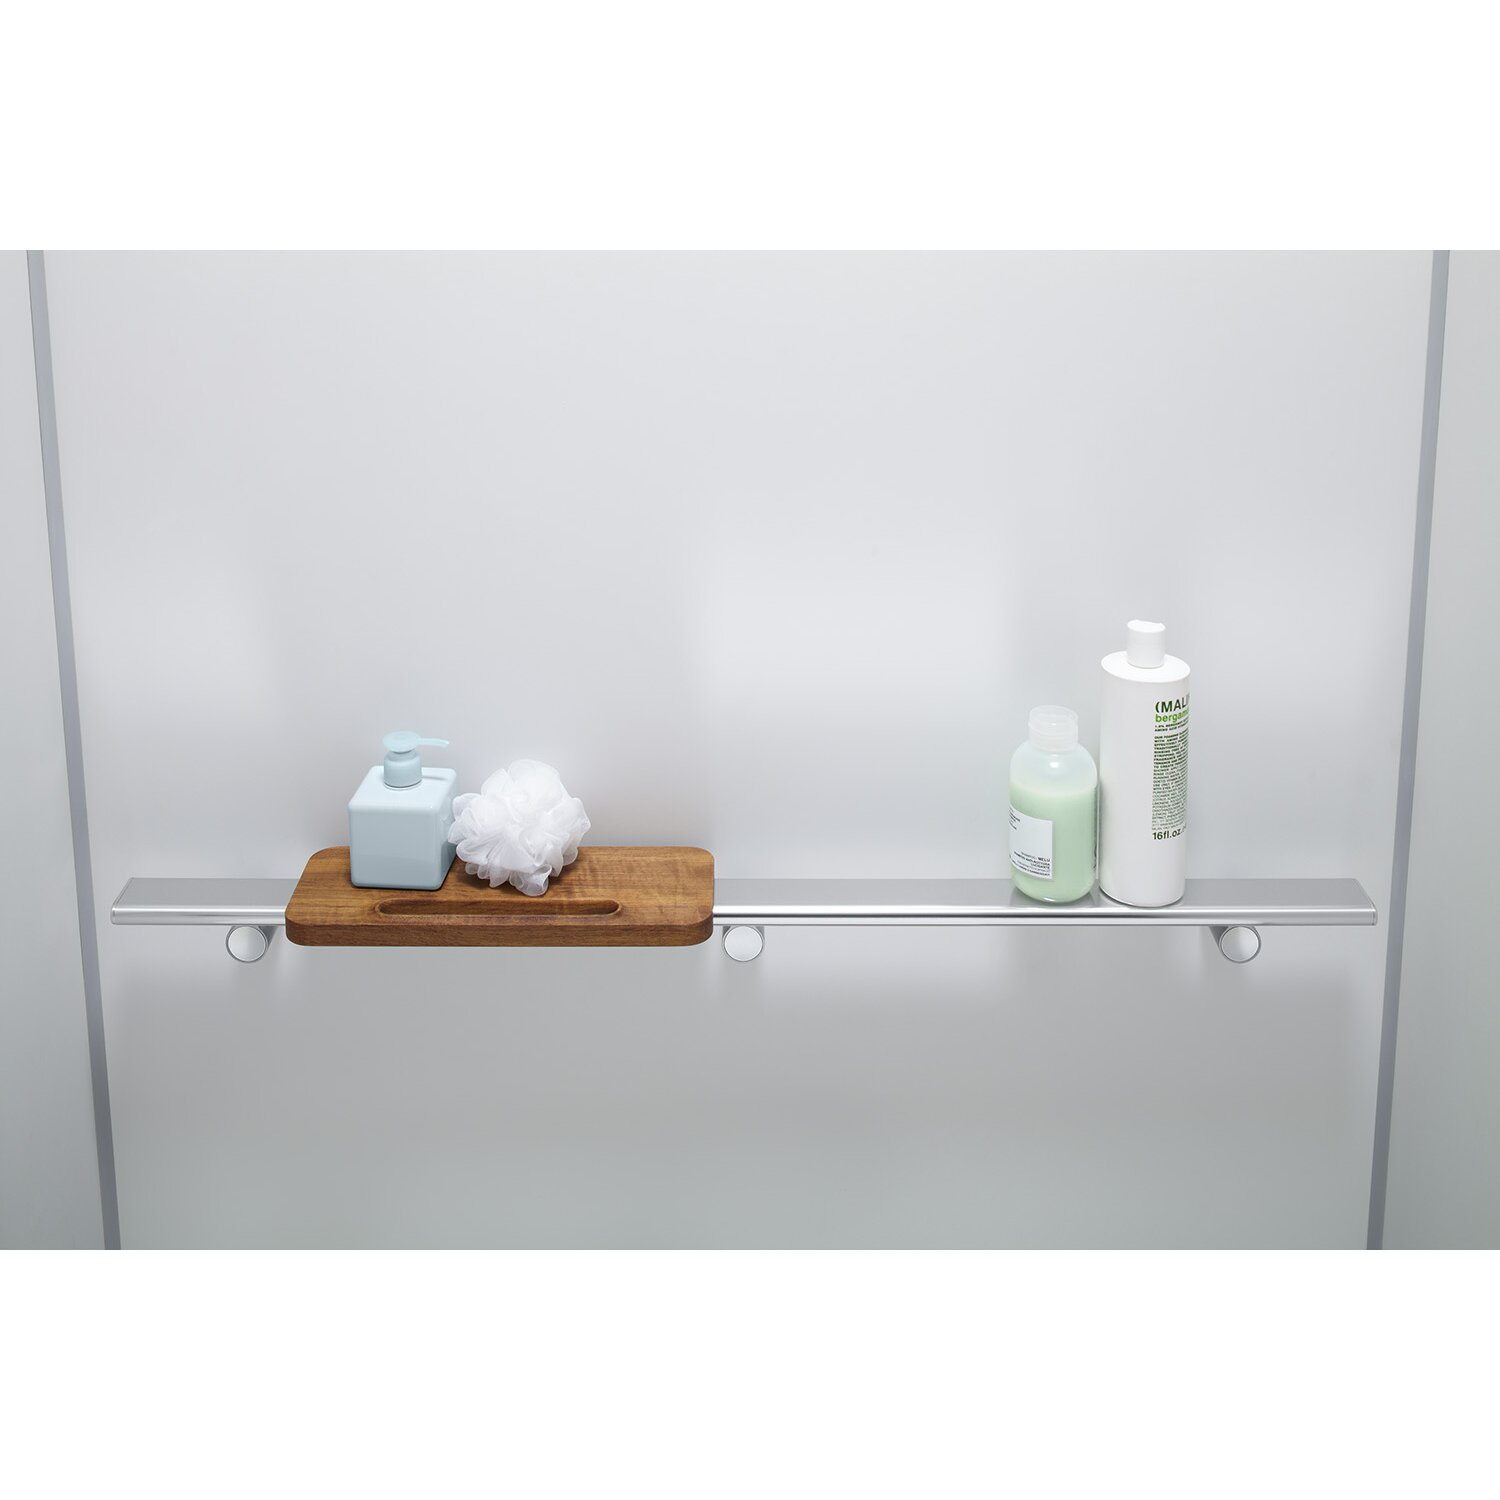 Bathroom Shelf Kohler Choreograph 36 W Bathroom Shelf Reviews Wayfair